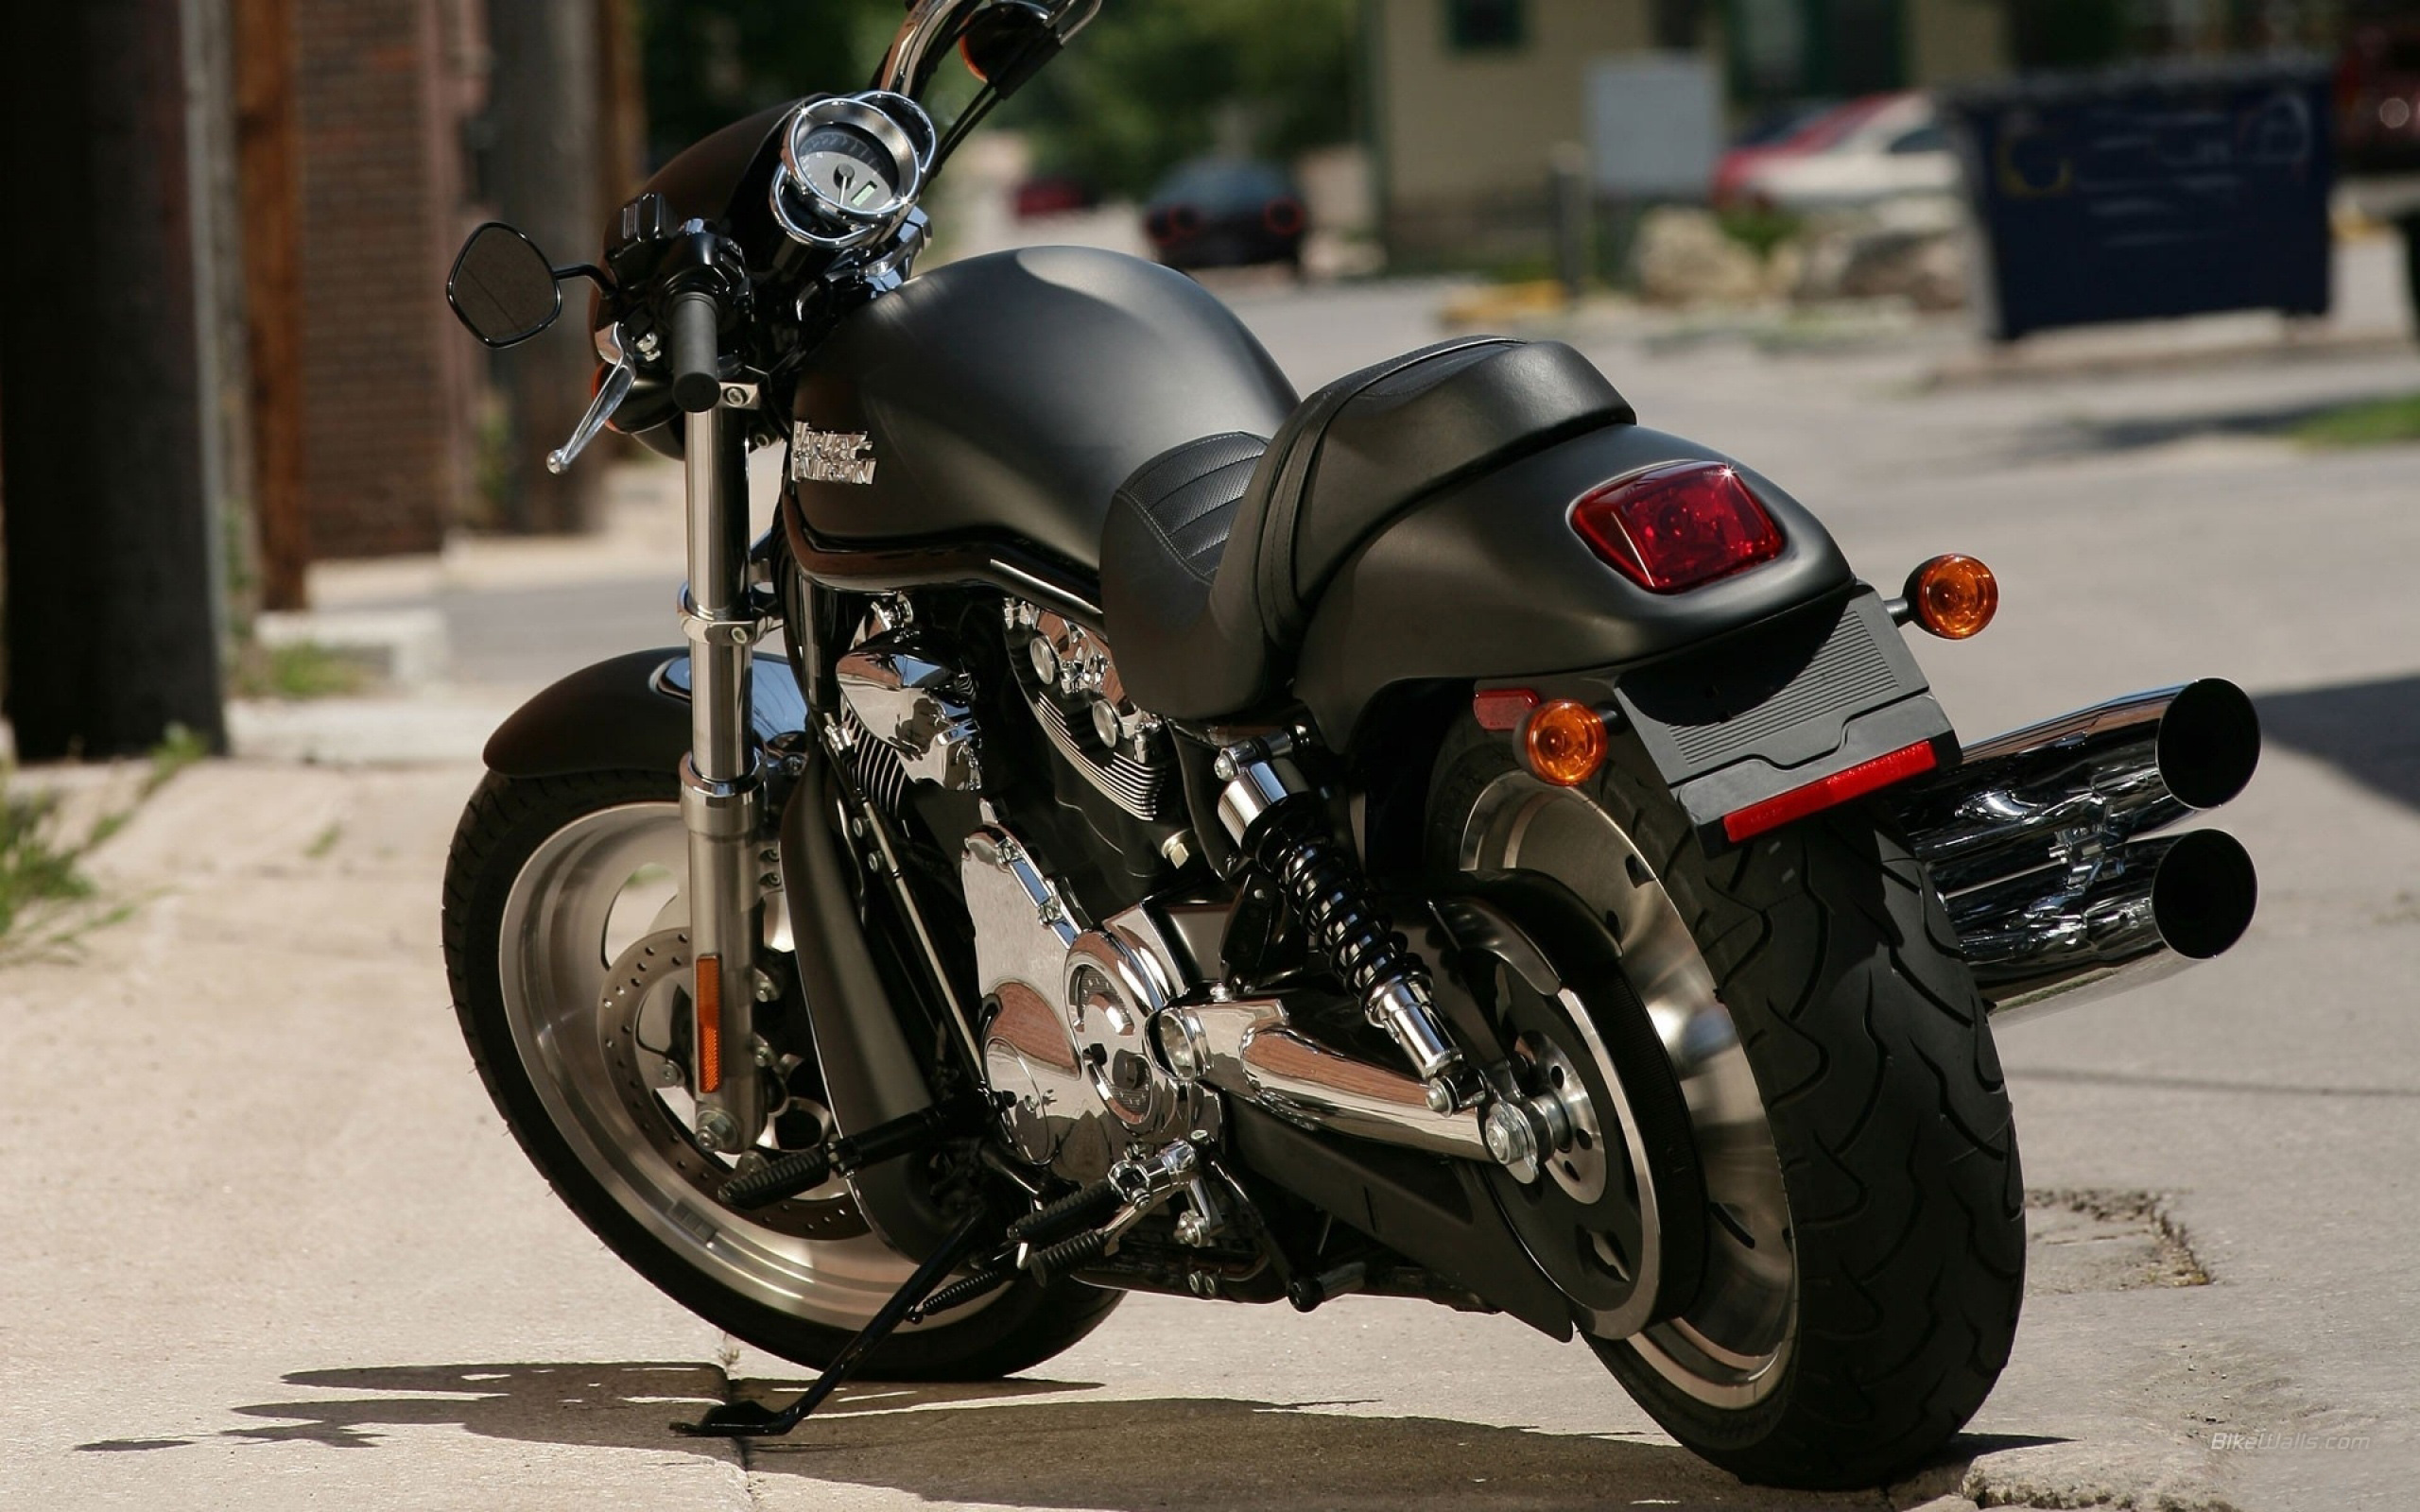 Free Download 50 Harley Davidson Wallpapers Hd For Pc